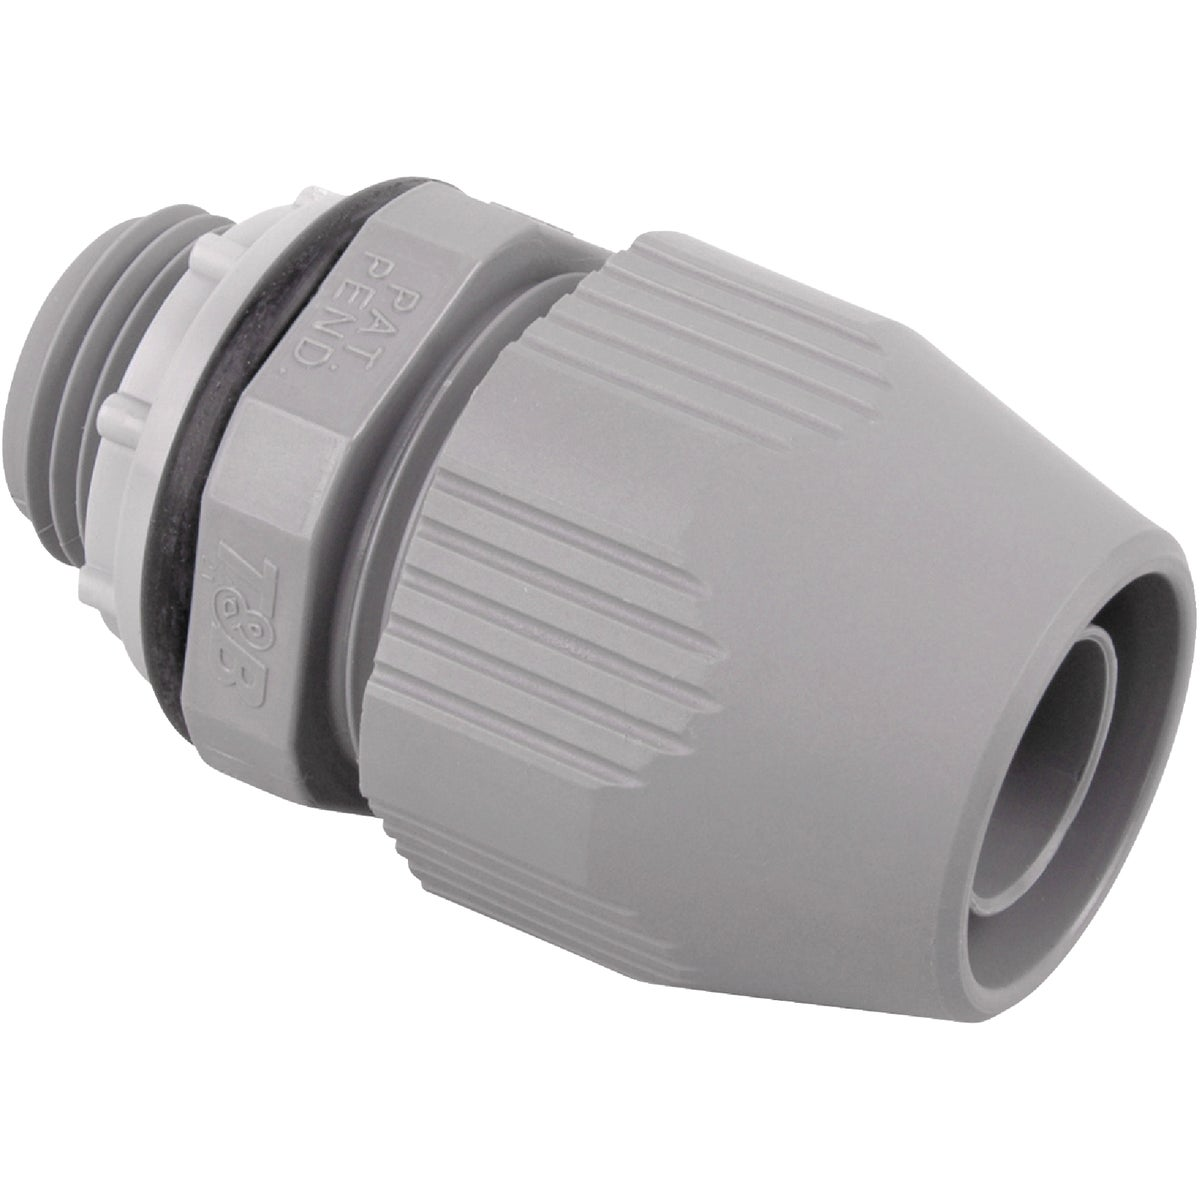 "1/2"" LIQTITE CONNECTOR - LT501 by Thomas & Betts"